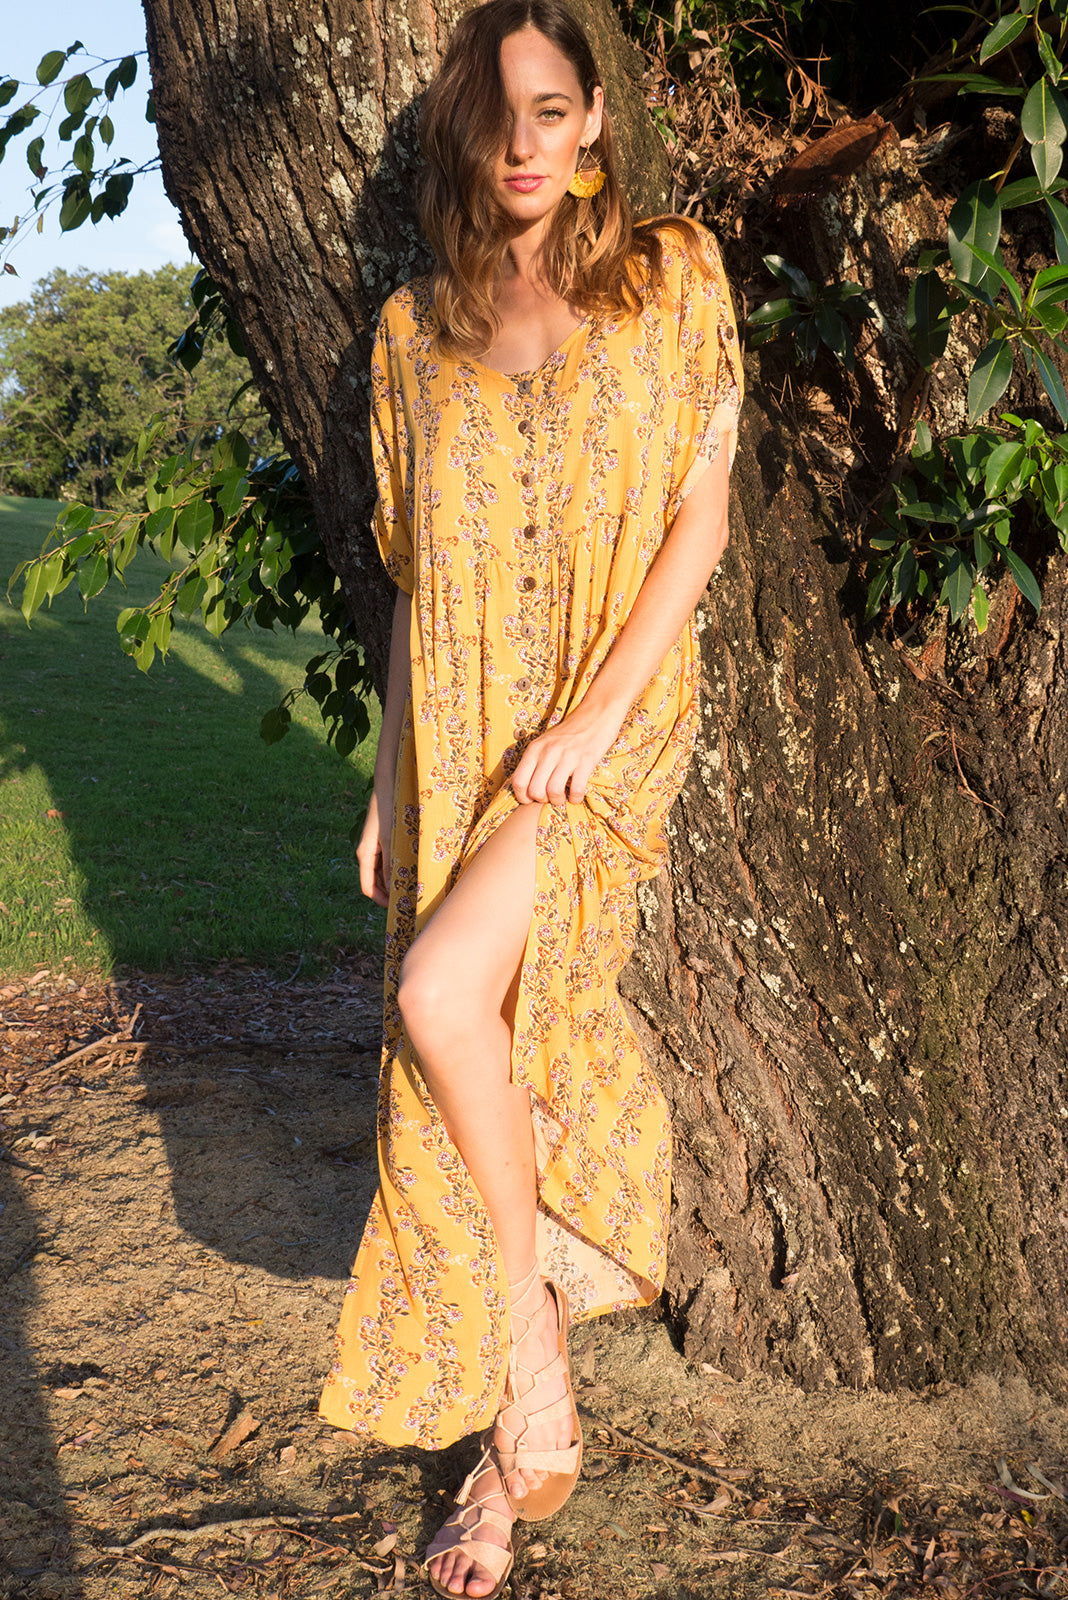 Rocco button front maxi dress in golden yellow with a small vines and daisy print